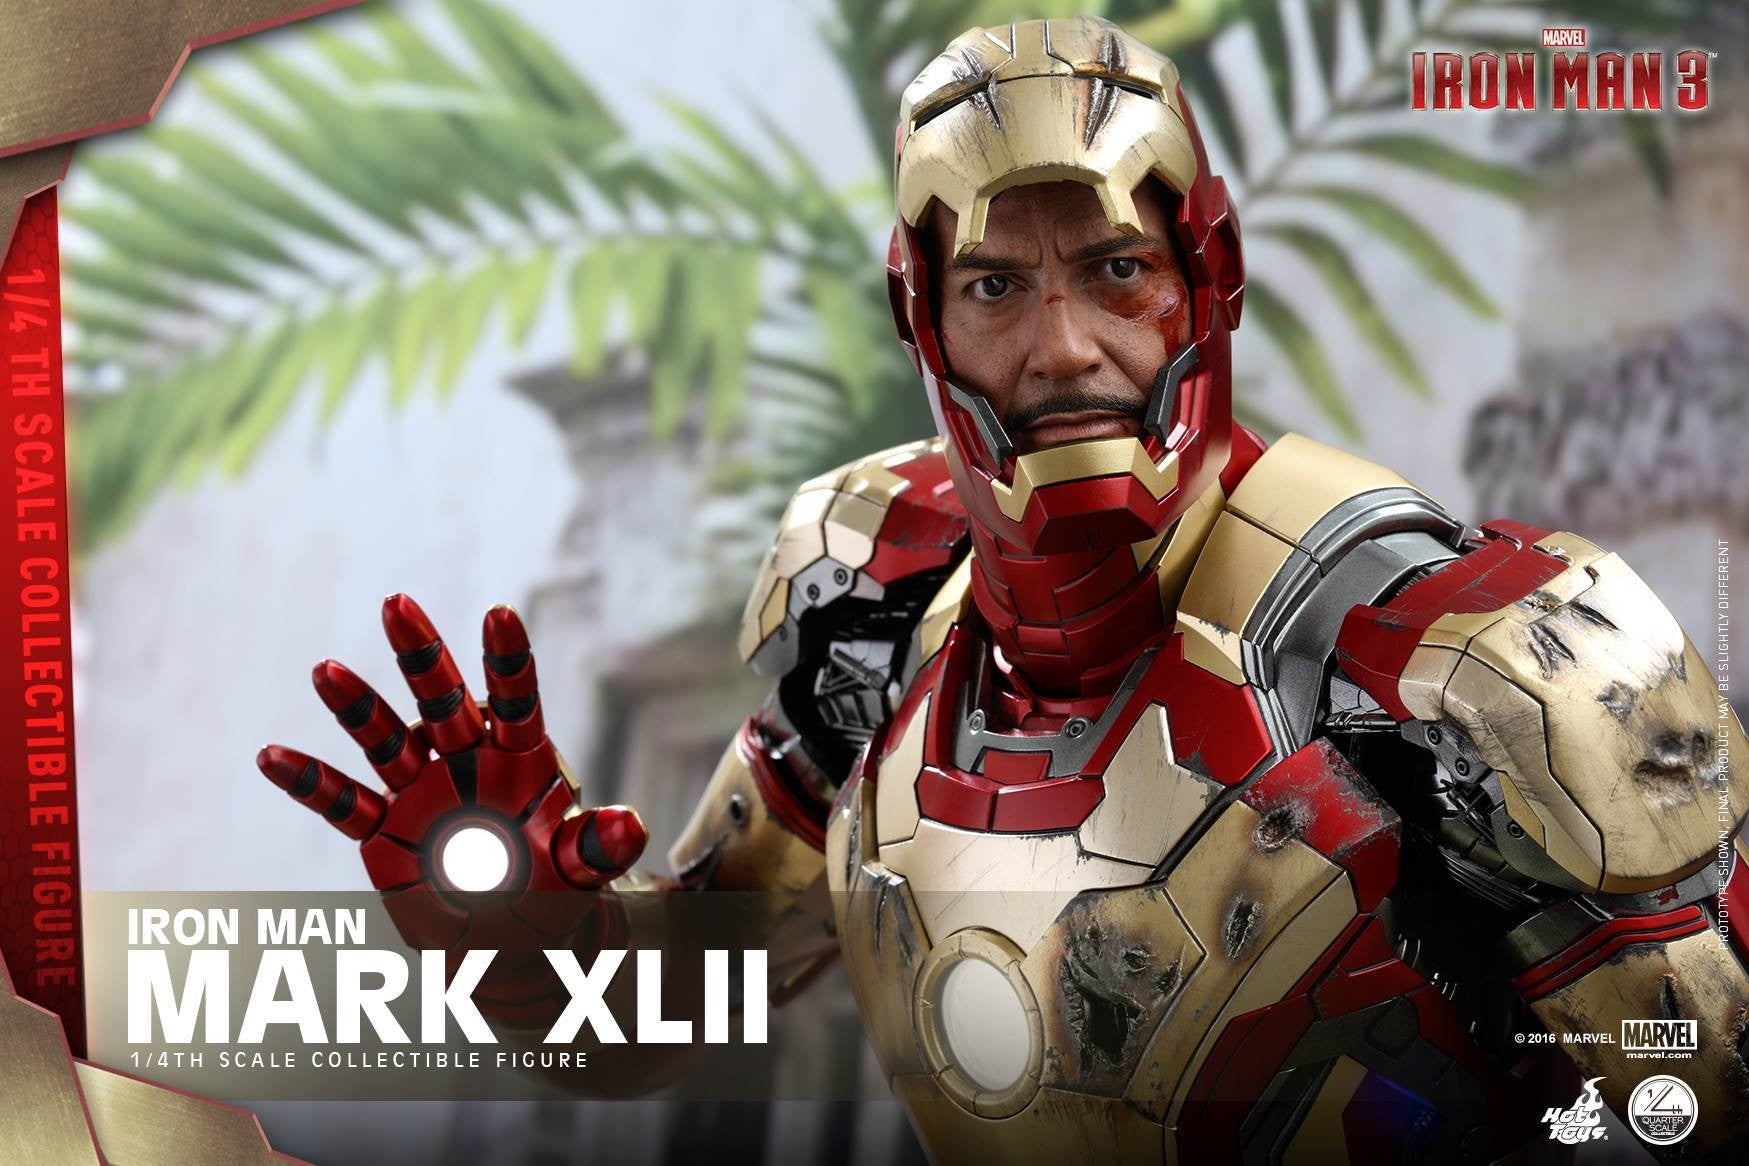 Hot Toys - QS007 - Iron Man 3 - 1/4th scale Mark XLII - Marvelous Toys - 6